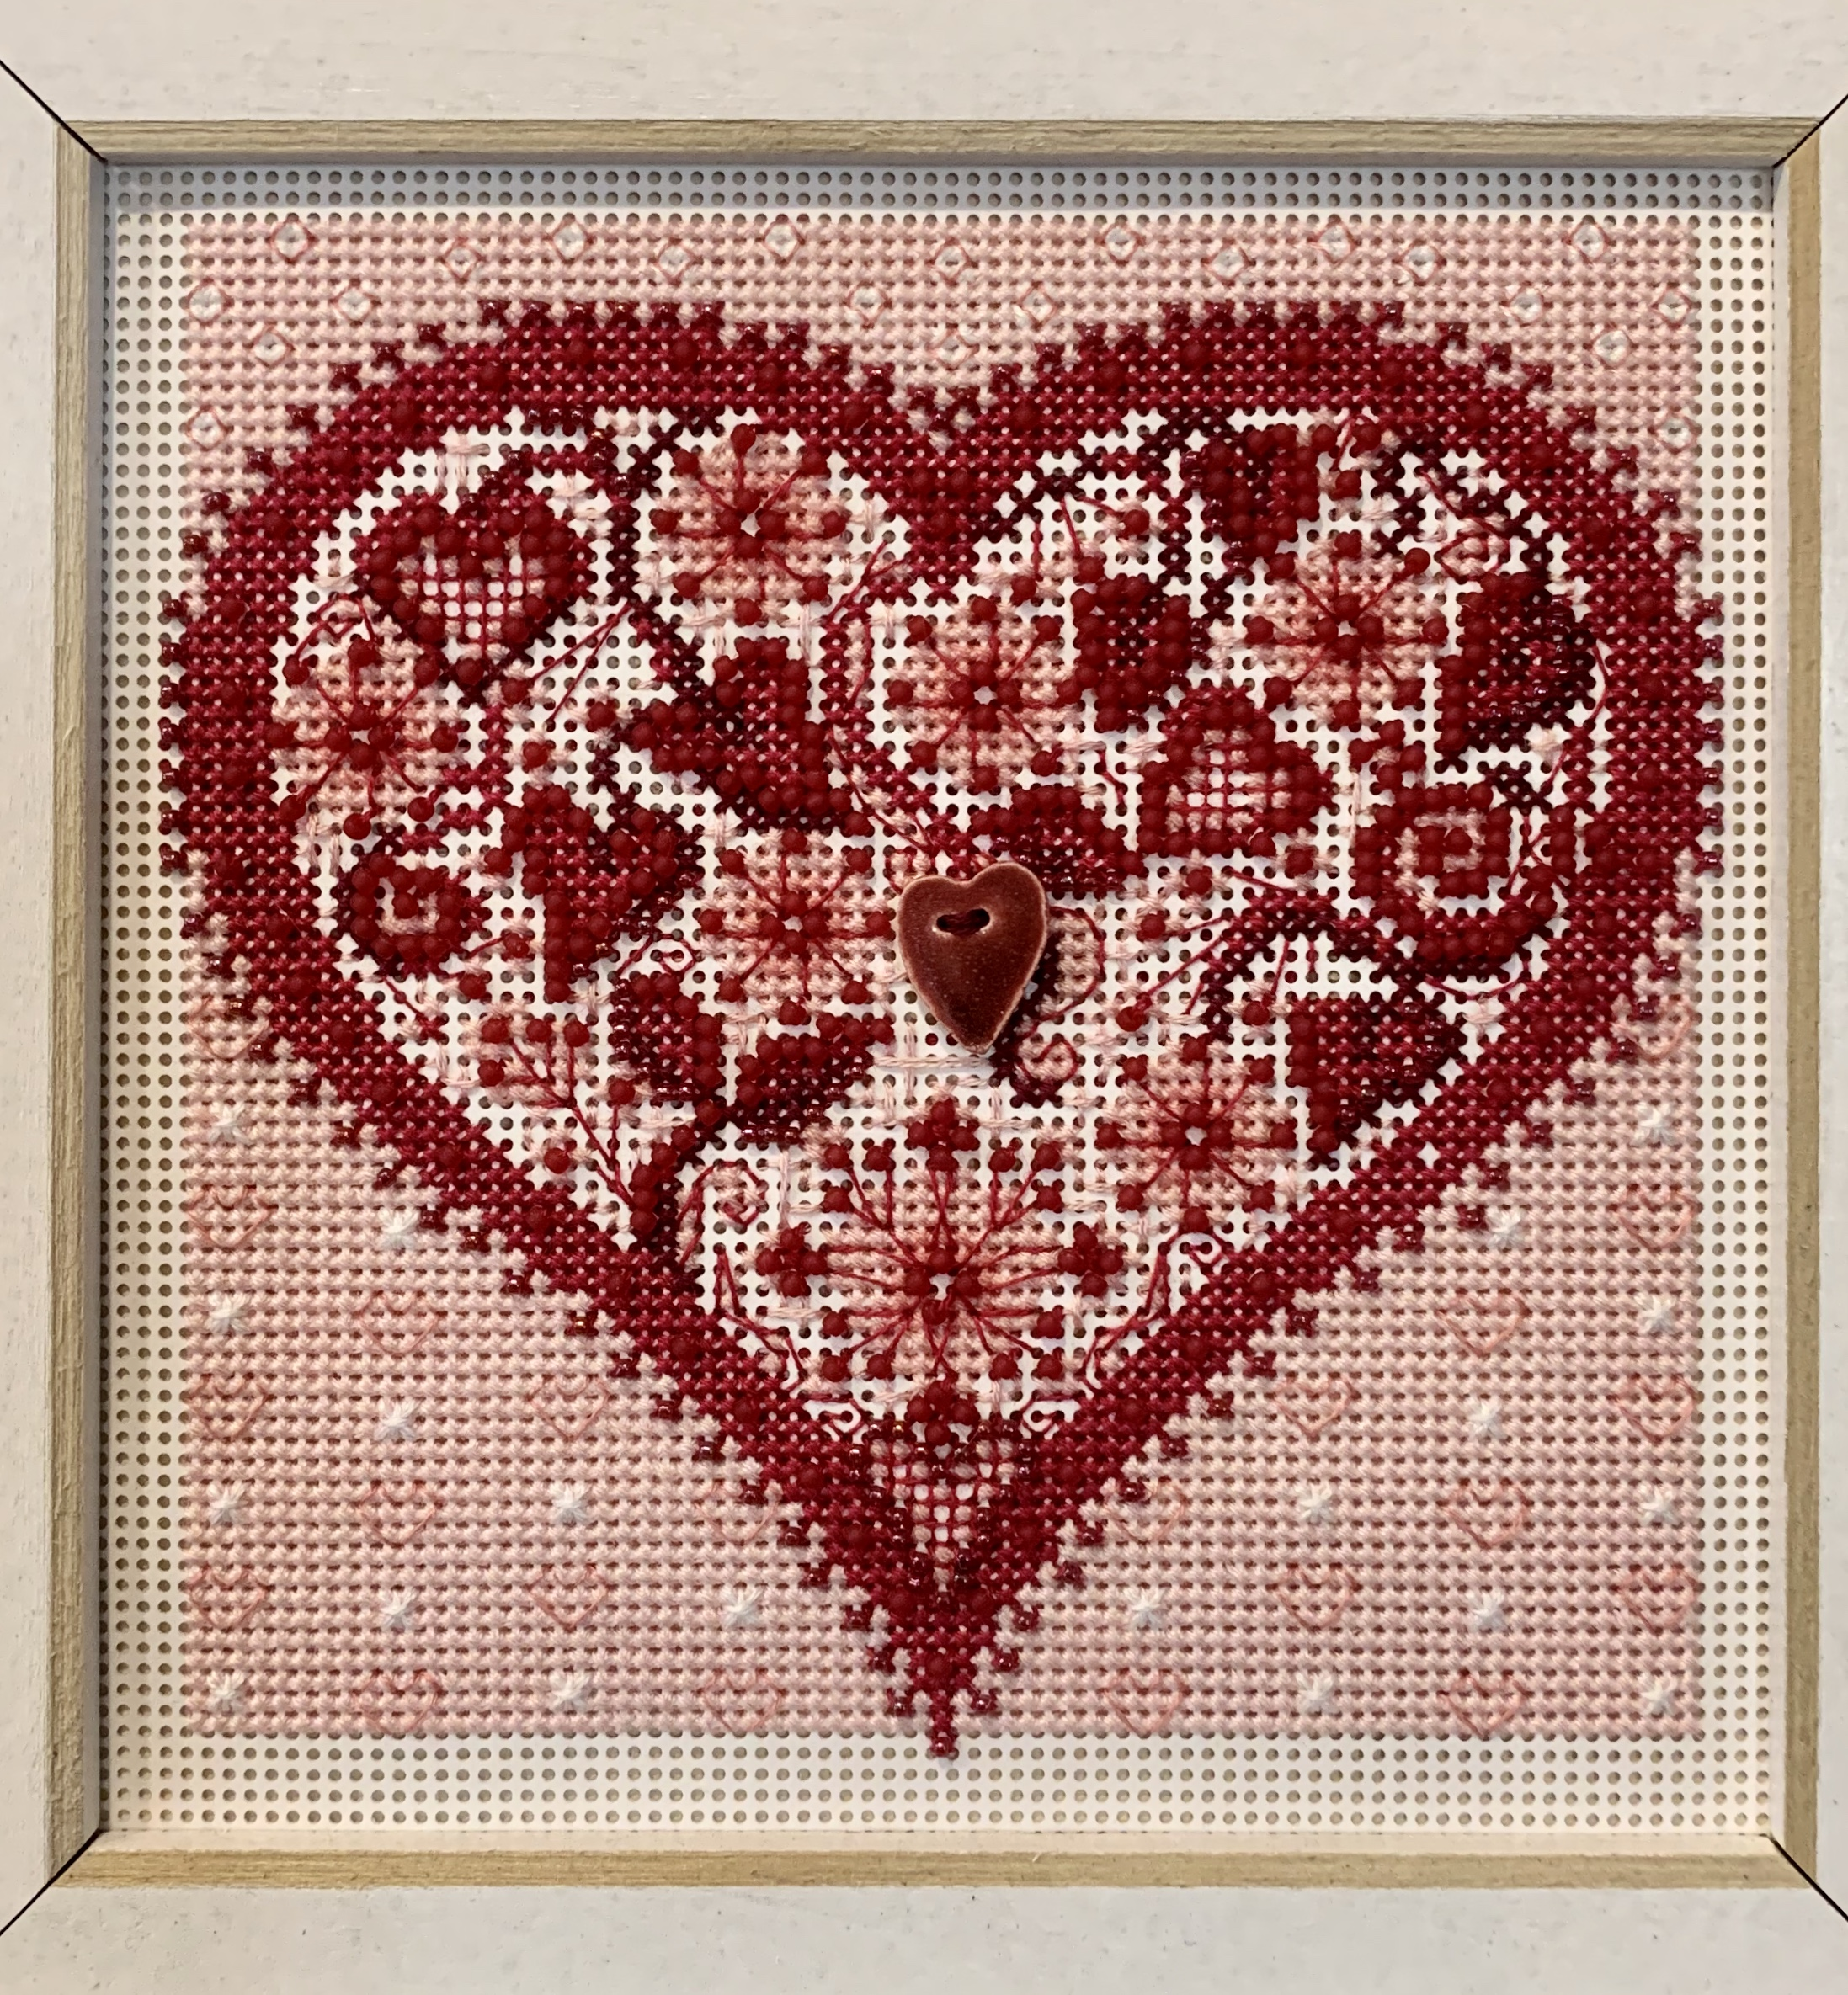 LuanaMorcom-crossstitch